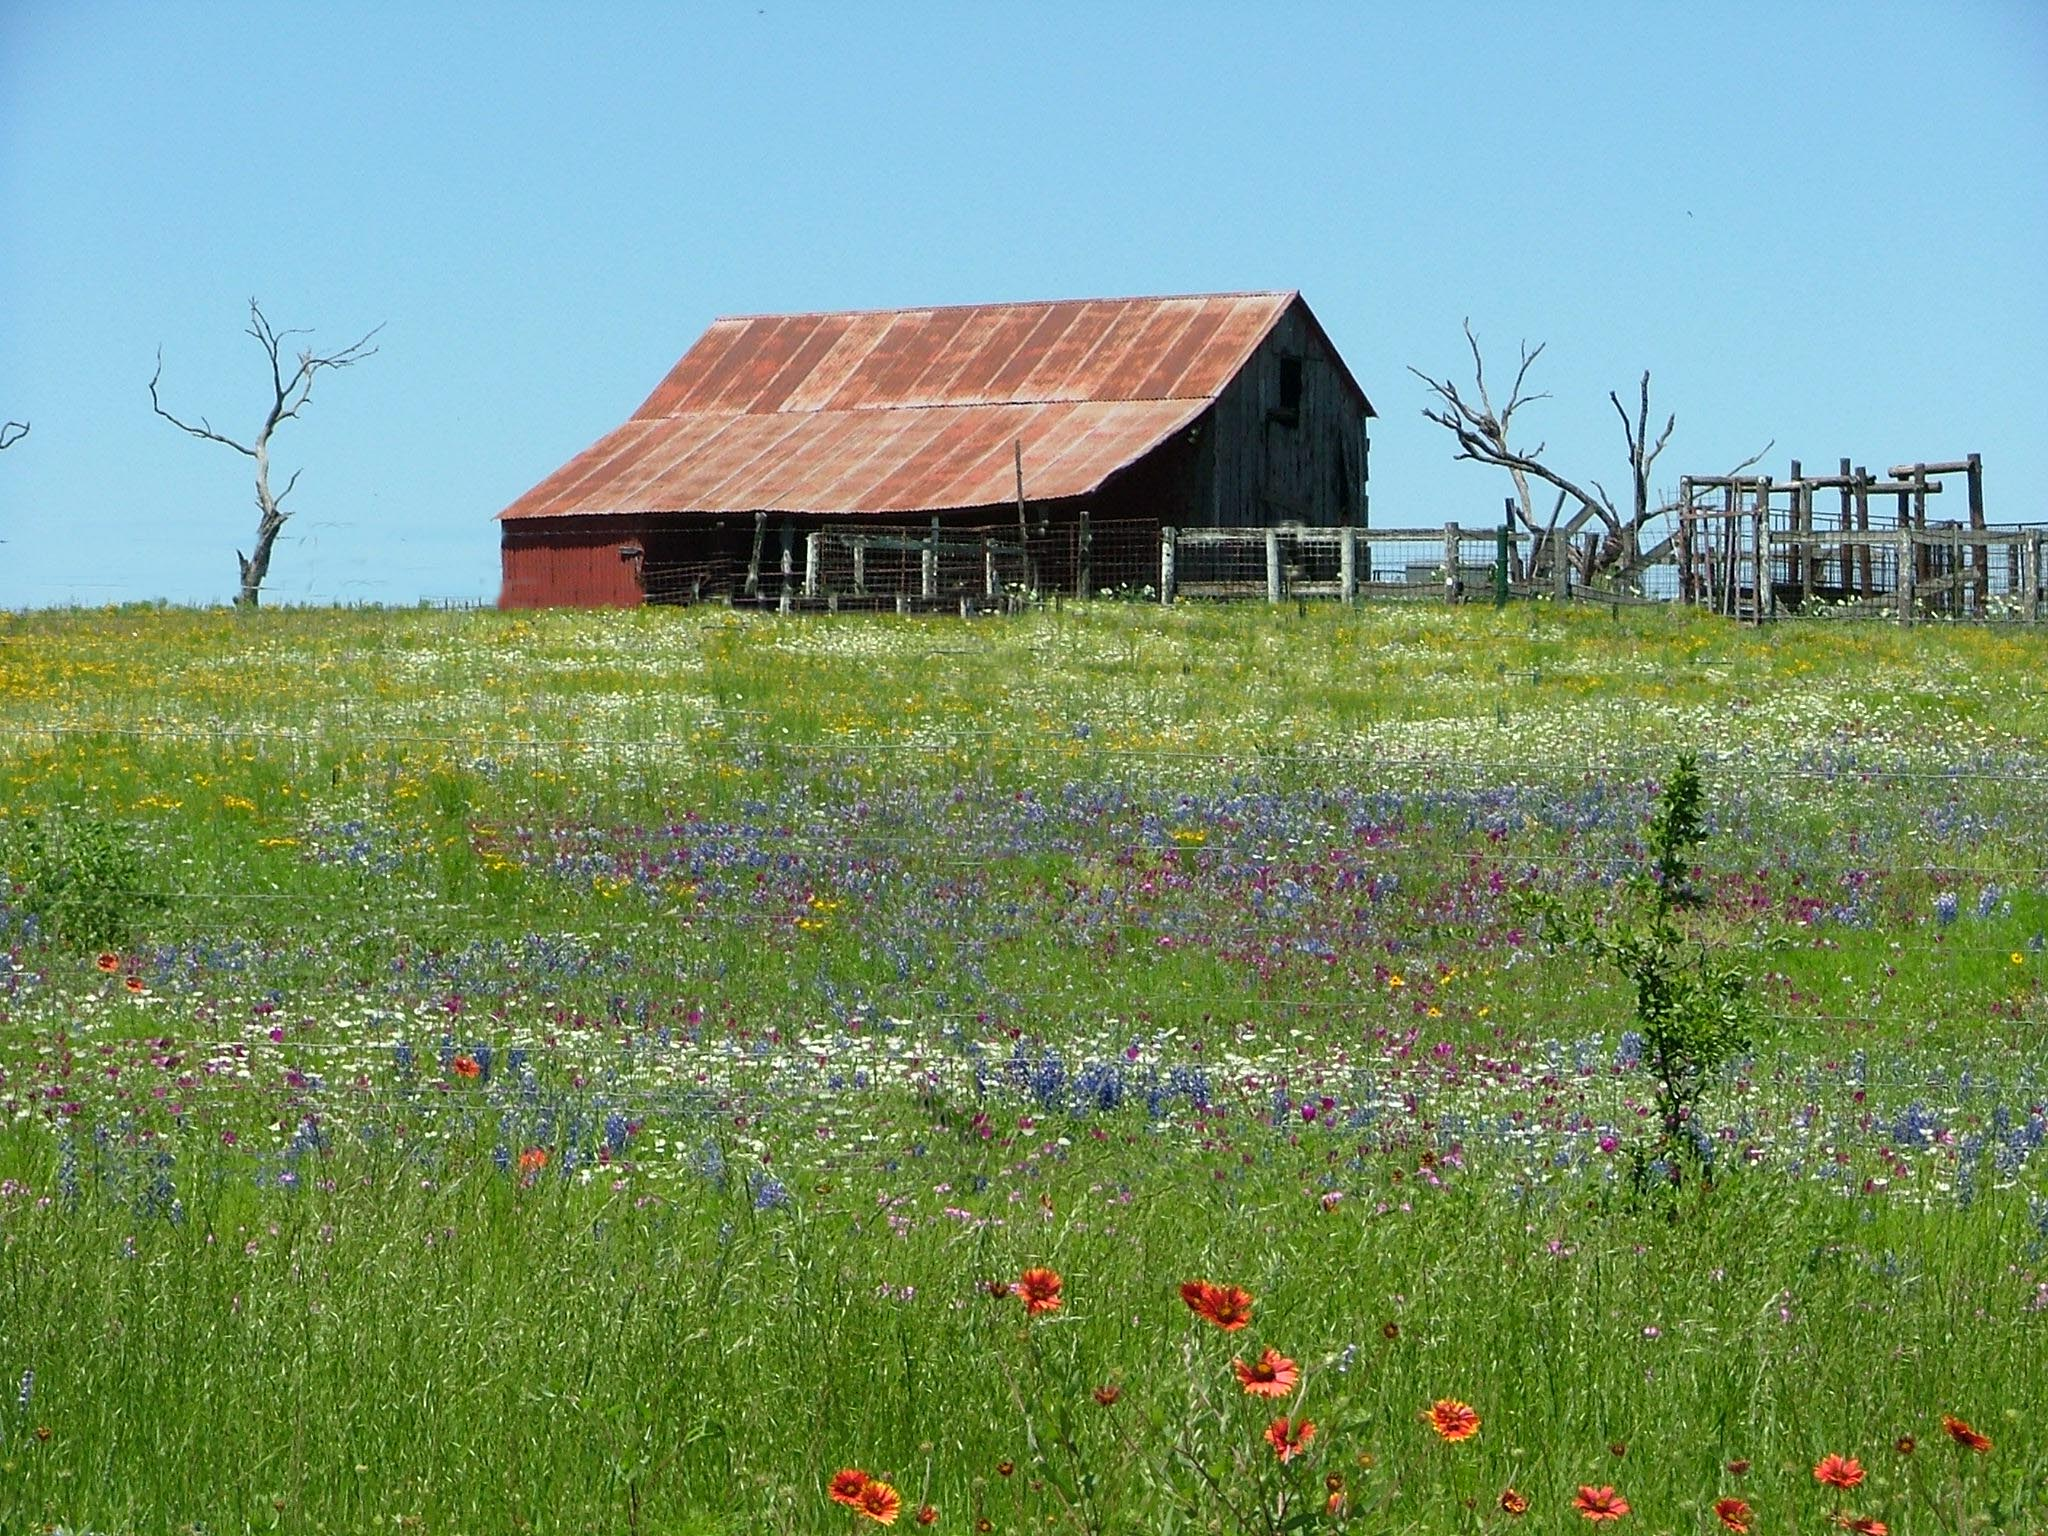 Old Windmill In Fall Grass Wallpaper Texas Hill Country Barn In Wildflowers Rustic Images